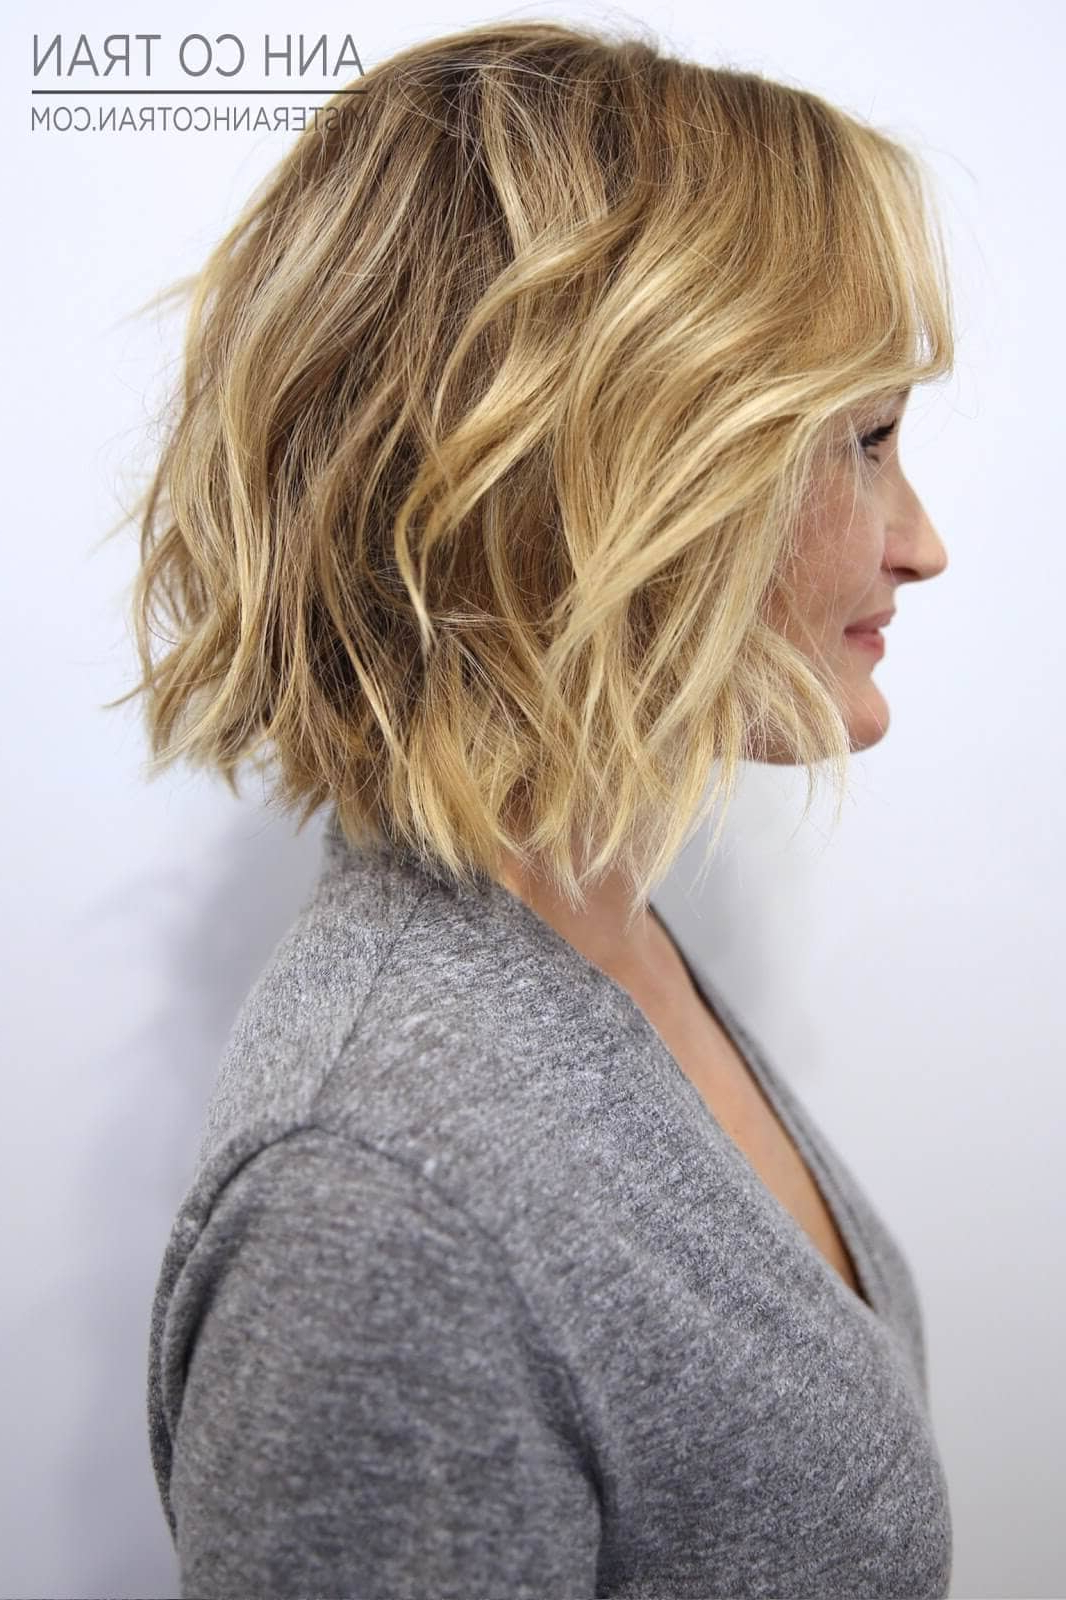 50 Ways To Wear Short Hair With Bangs For A Fresh New Look For Adorable Wavy Bob Hairstyles (View 12 of 20)